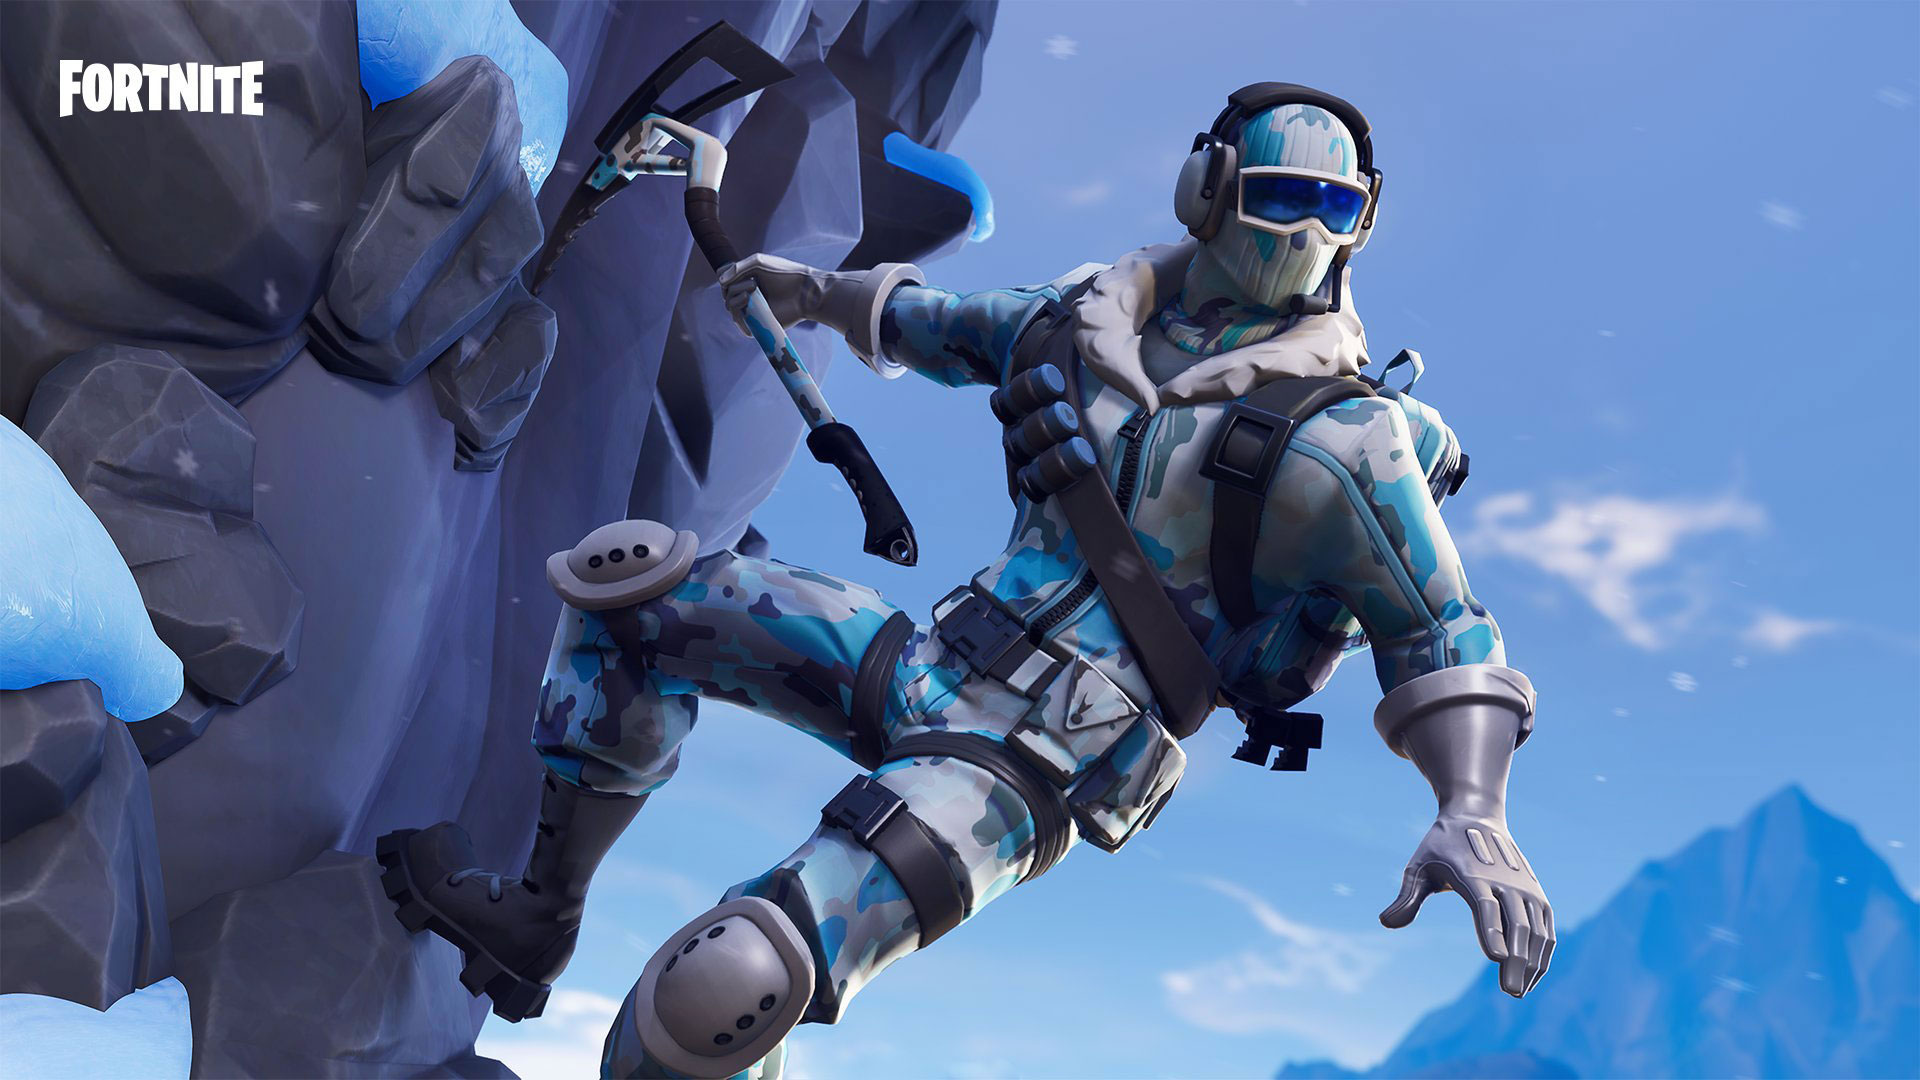 download wallpaper: Fortnite skin – Frostbite wallpaper